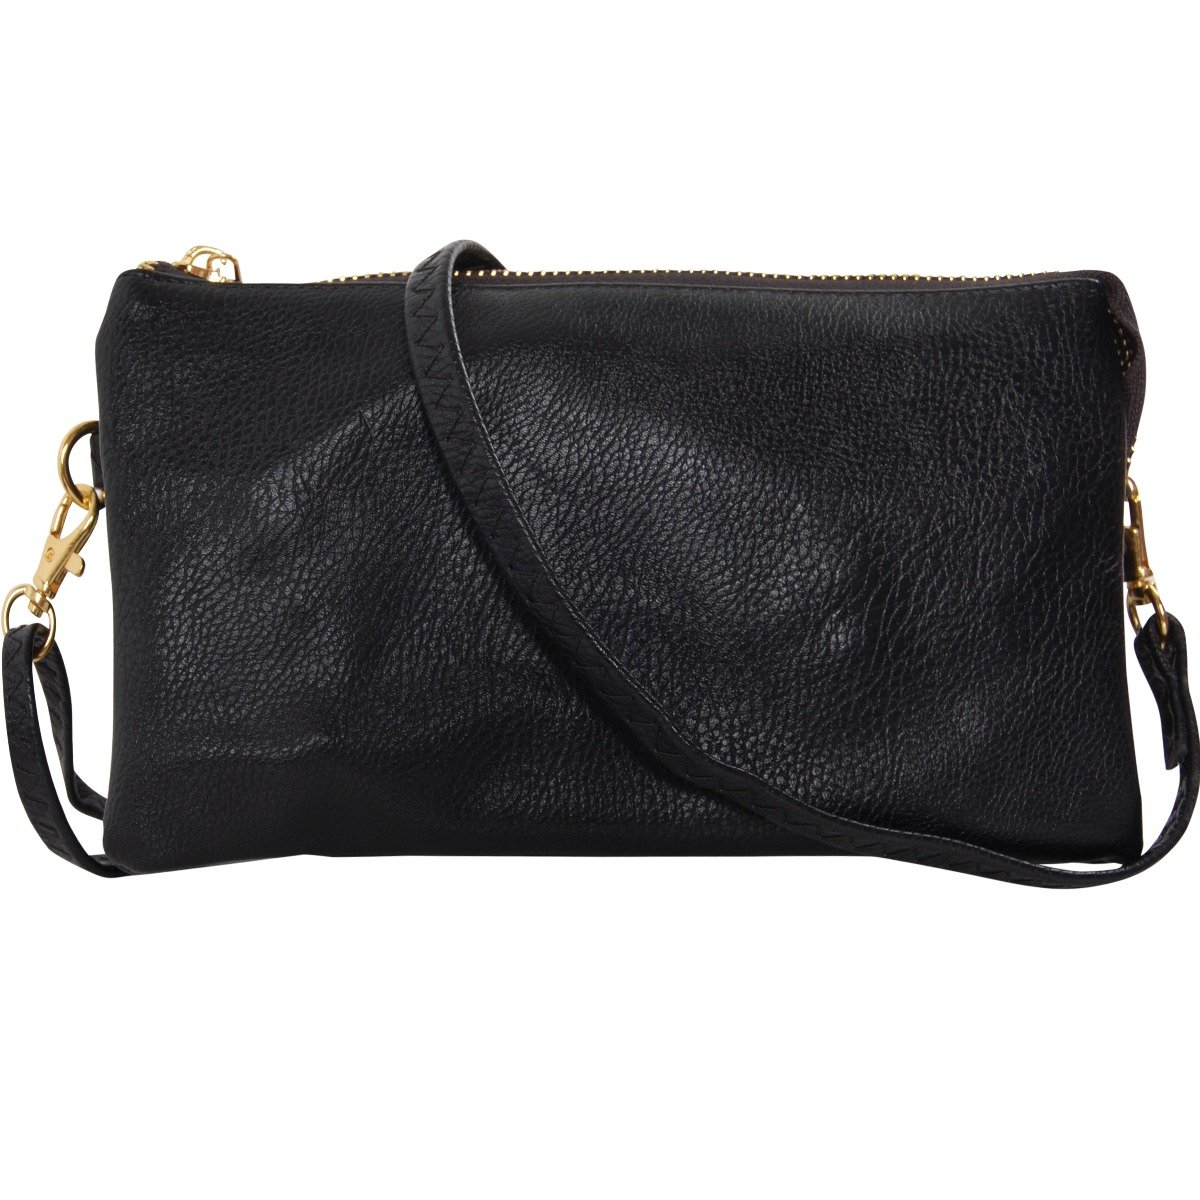 f79edccaed3 Humble Chic Vegan Leather Small Crossbody Bag or Wristlet Clutch Purse,  Includes Adjustable Shoulder and Wrist Straps, Black  Handbags  Amazon.com